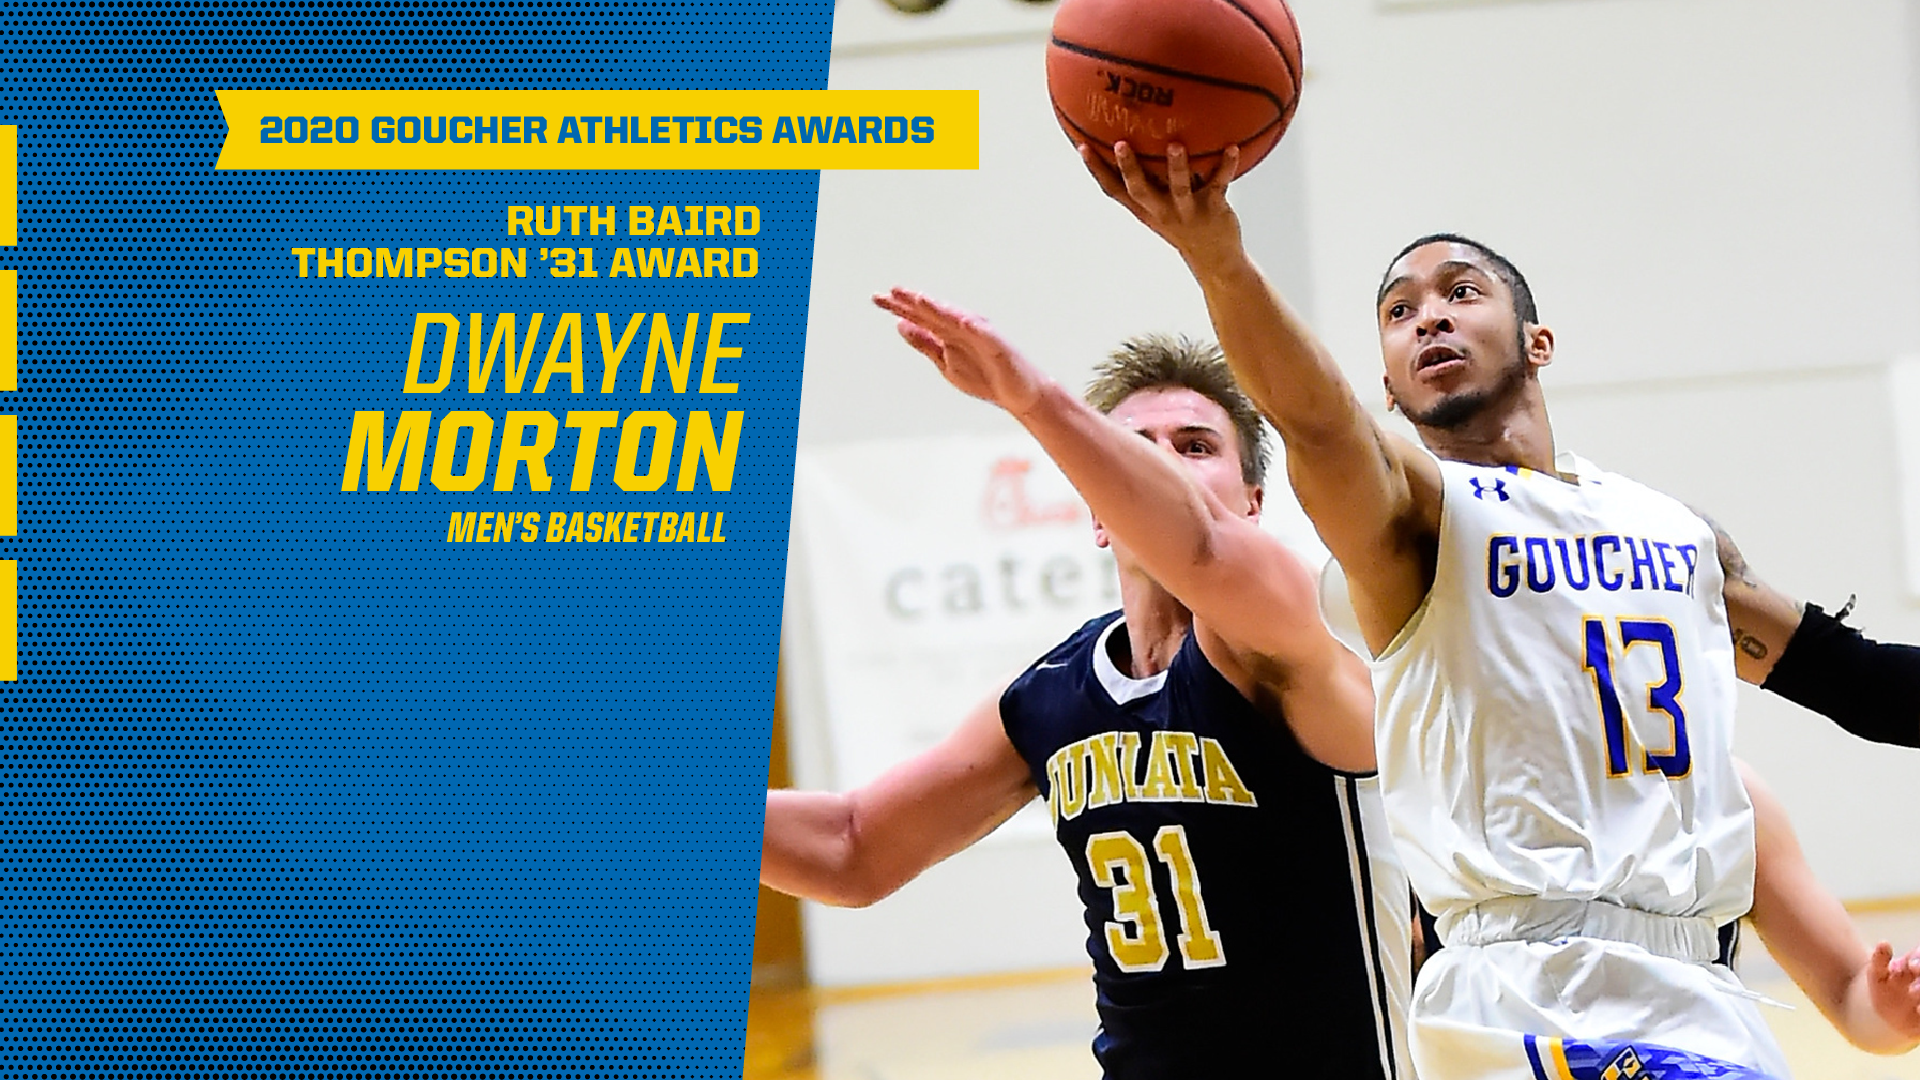 Goucher Athletics Announces Ruth Baird Thompson '31 Male Award Winner